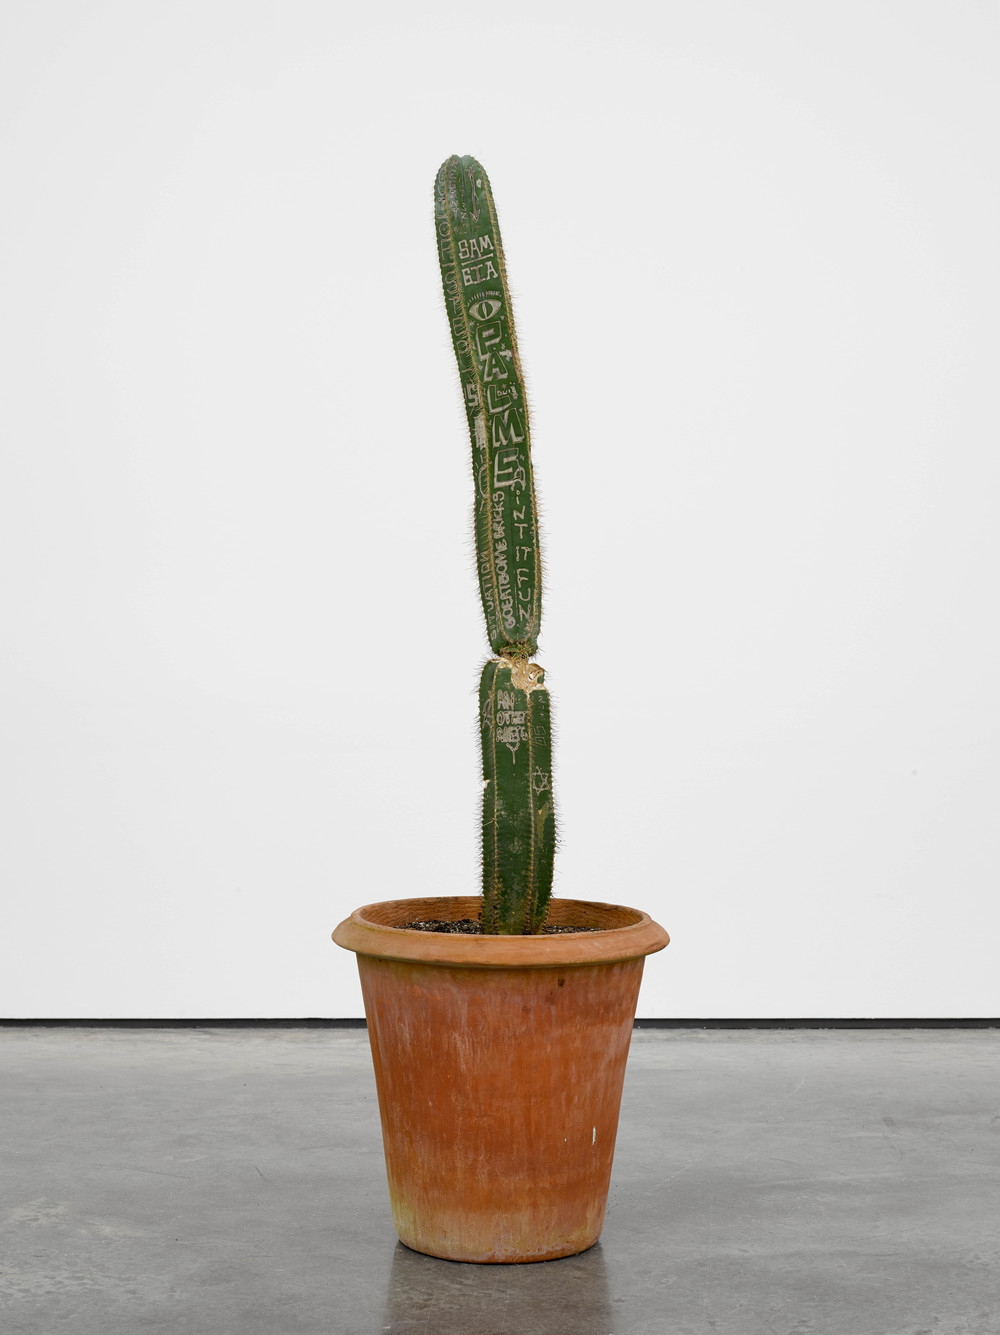 Ain't It Fun 2014 Cactus Dimensions variable